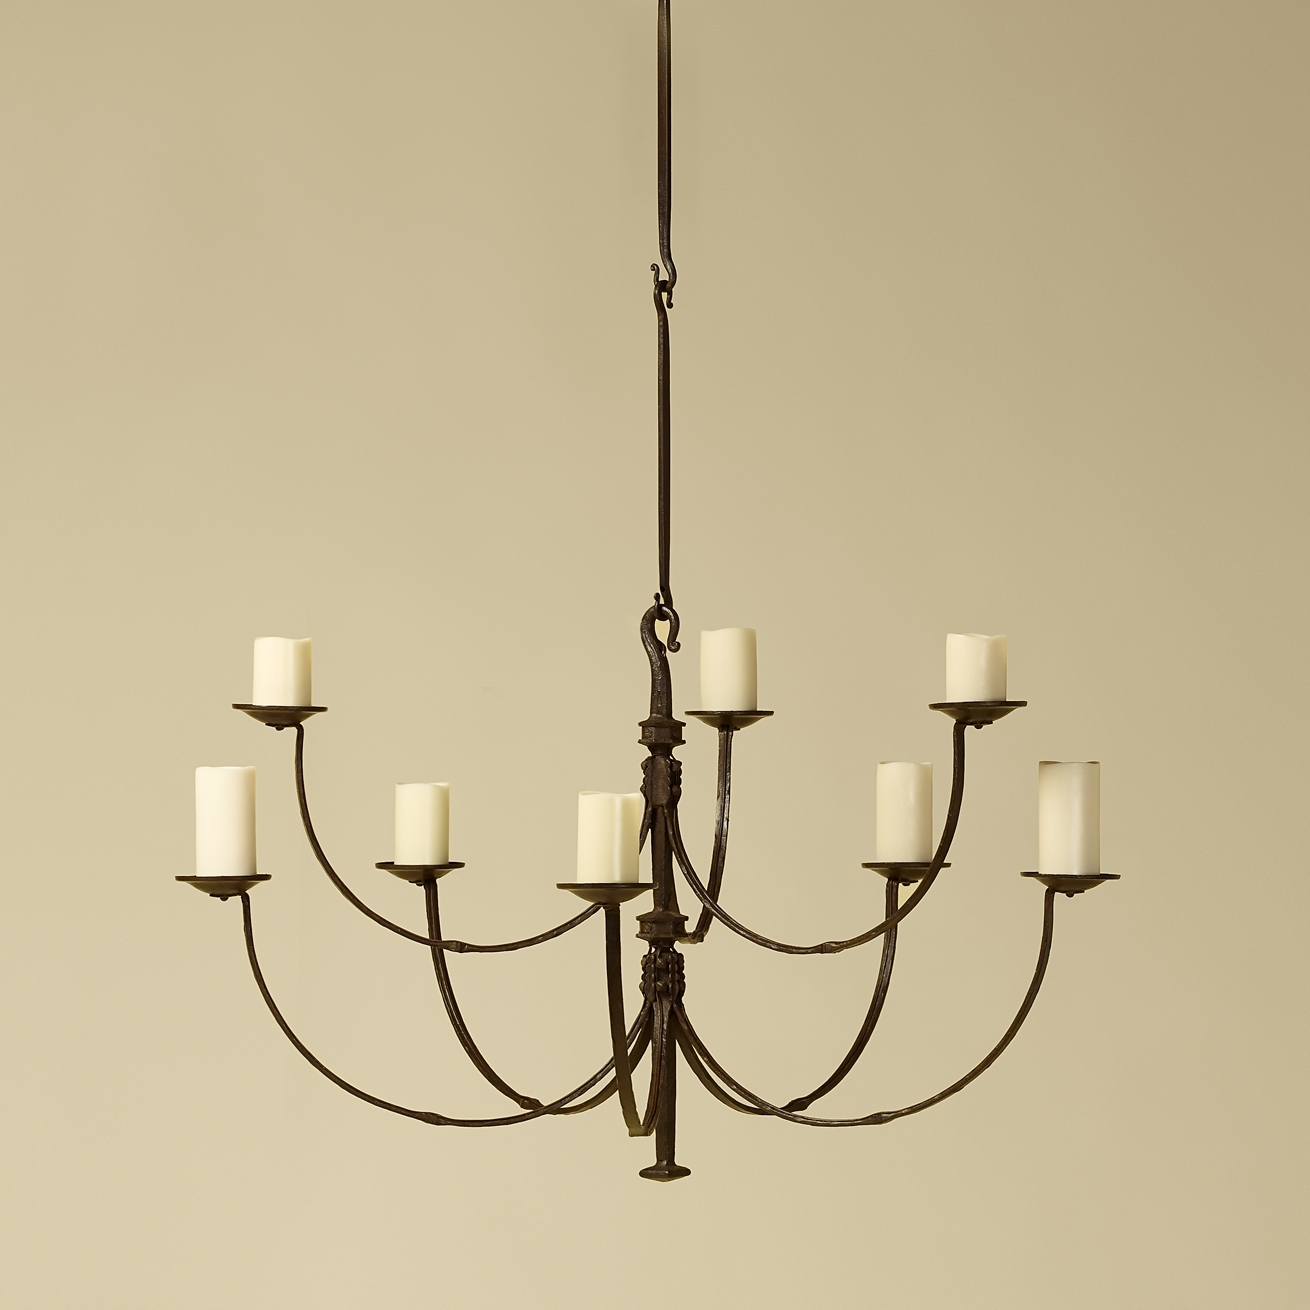 Fashionable Iron Chandelier Regarding Rose Tarlow Iron Chandelier – Such Graceful Lines On This Chandelier (View 12 of 15)